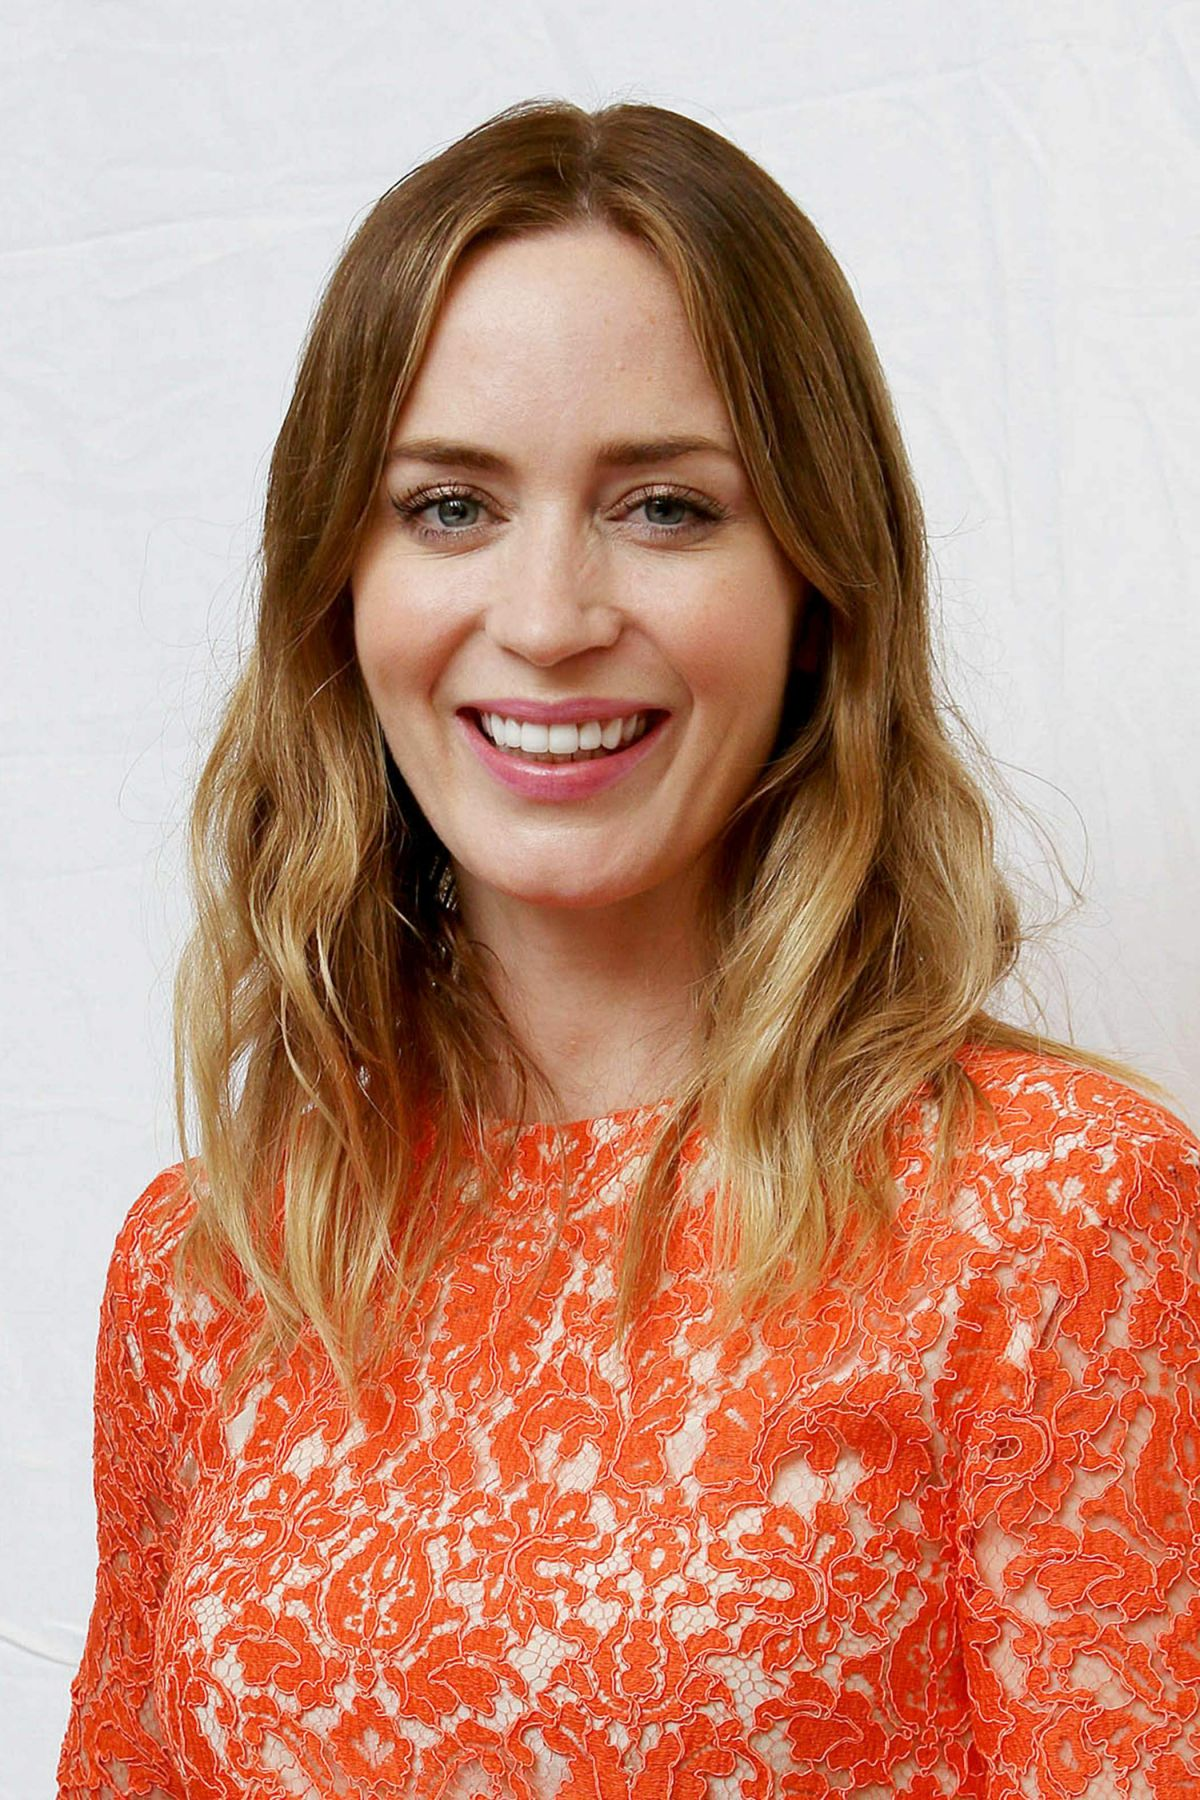 Emily Blunt At Vera Anderson 'Sicario' Press Conference - Celebzz ... Emily Blunt